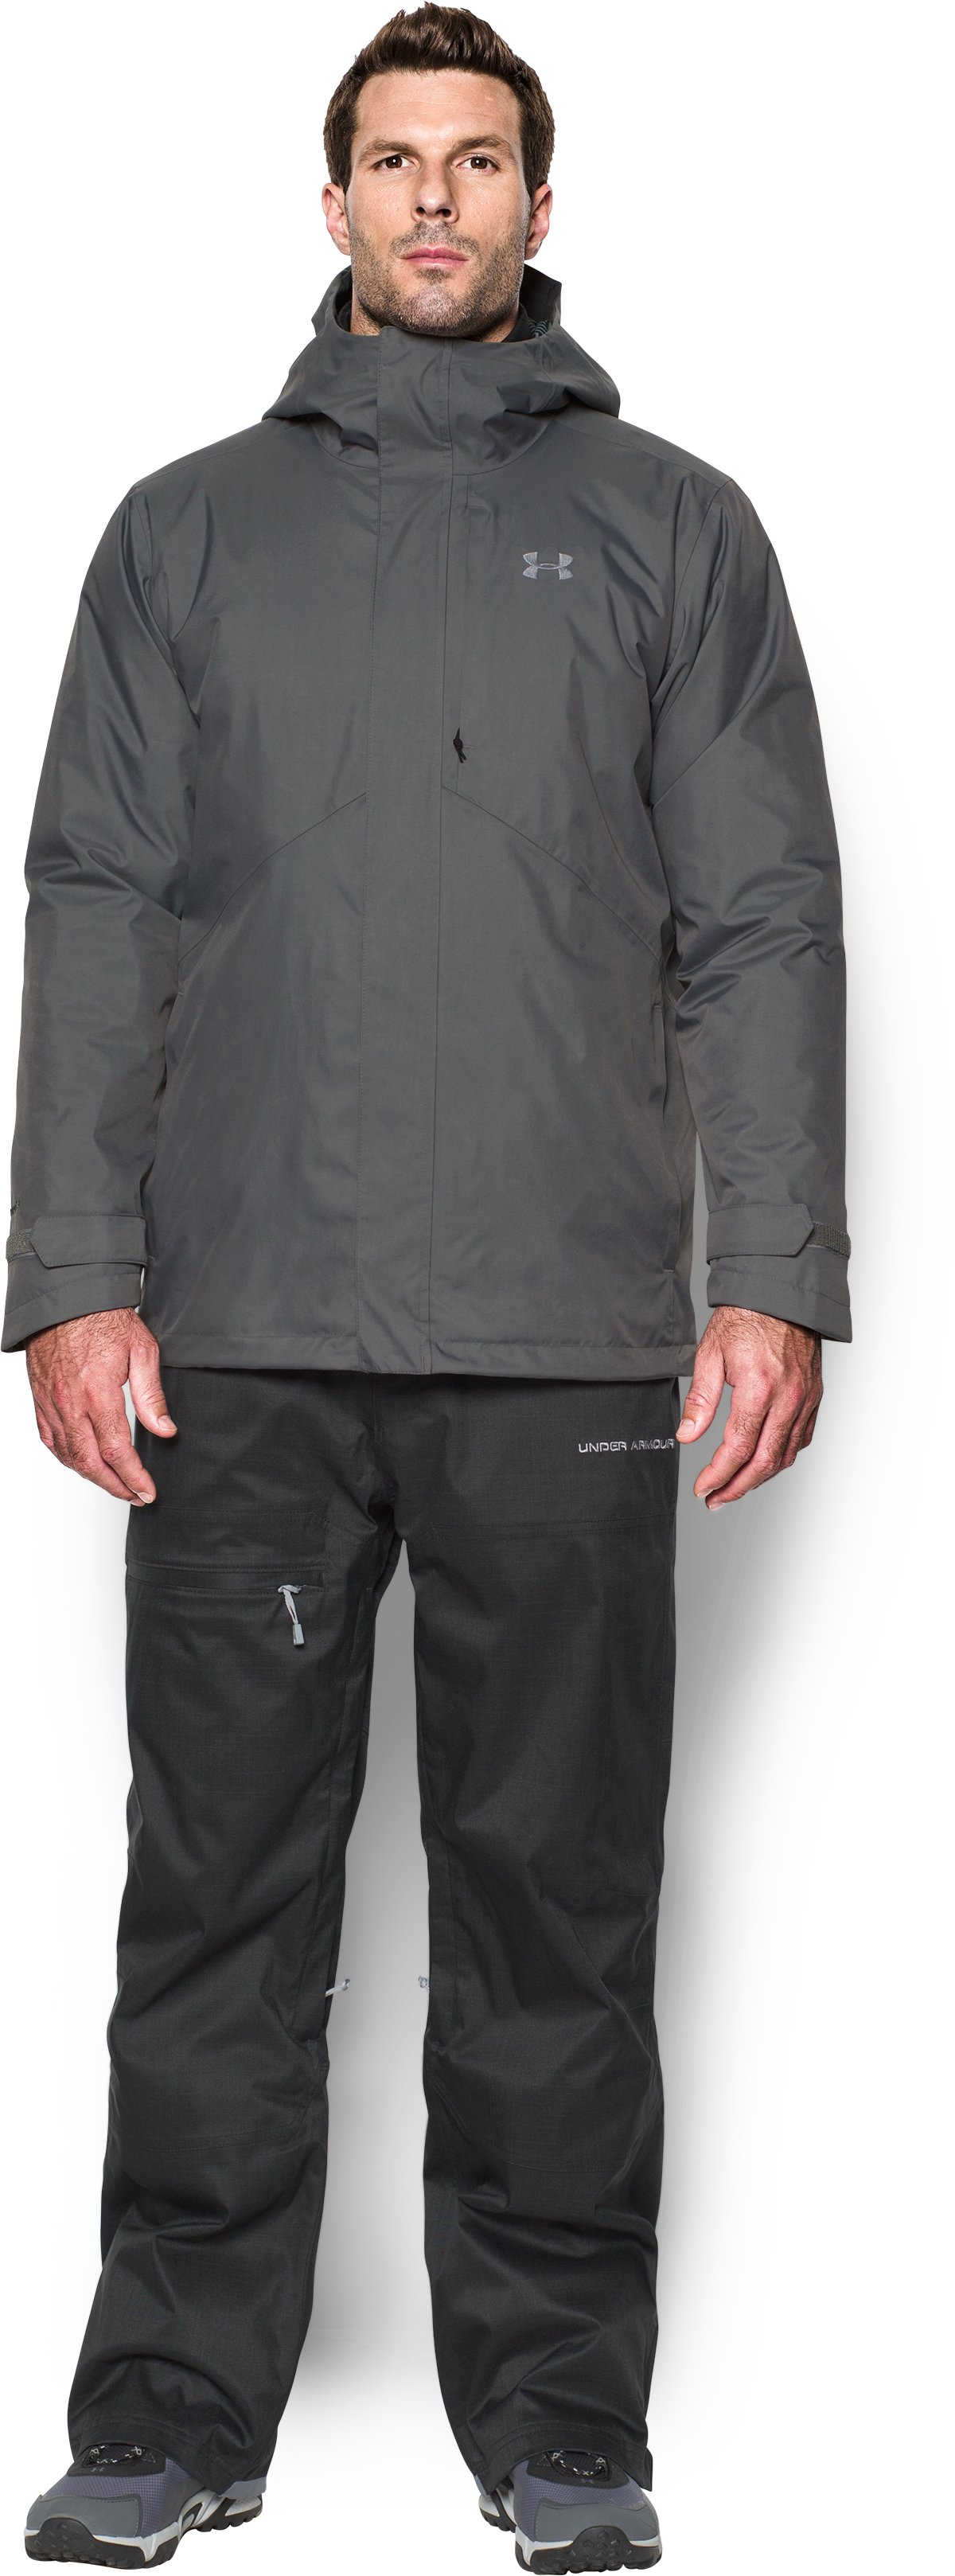 Men's ColdGear® Reactor Wayside 3-in-1 Jacket, Graphite, Front